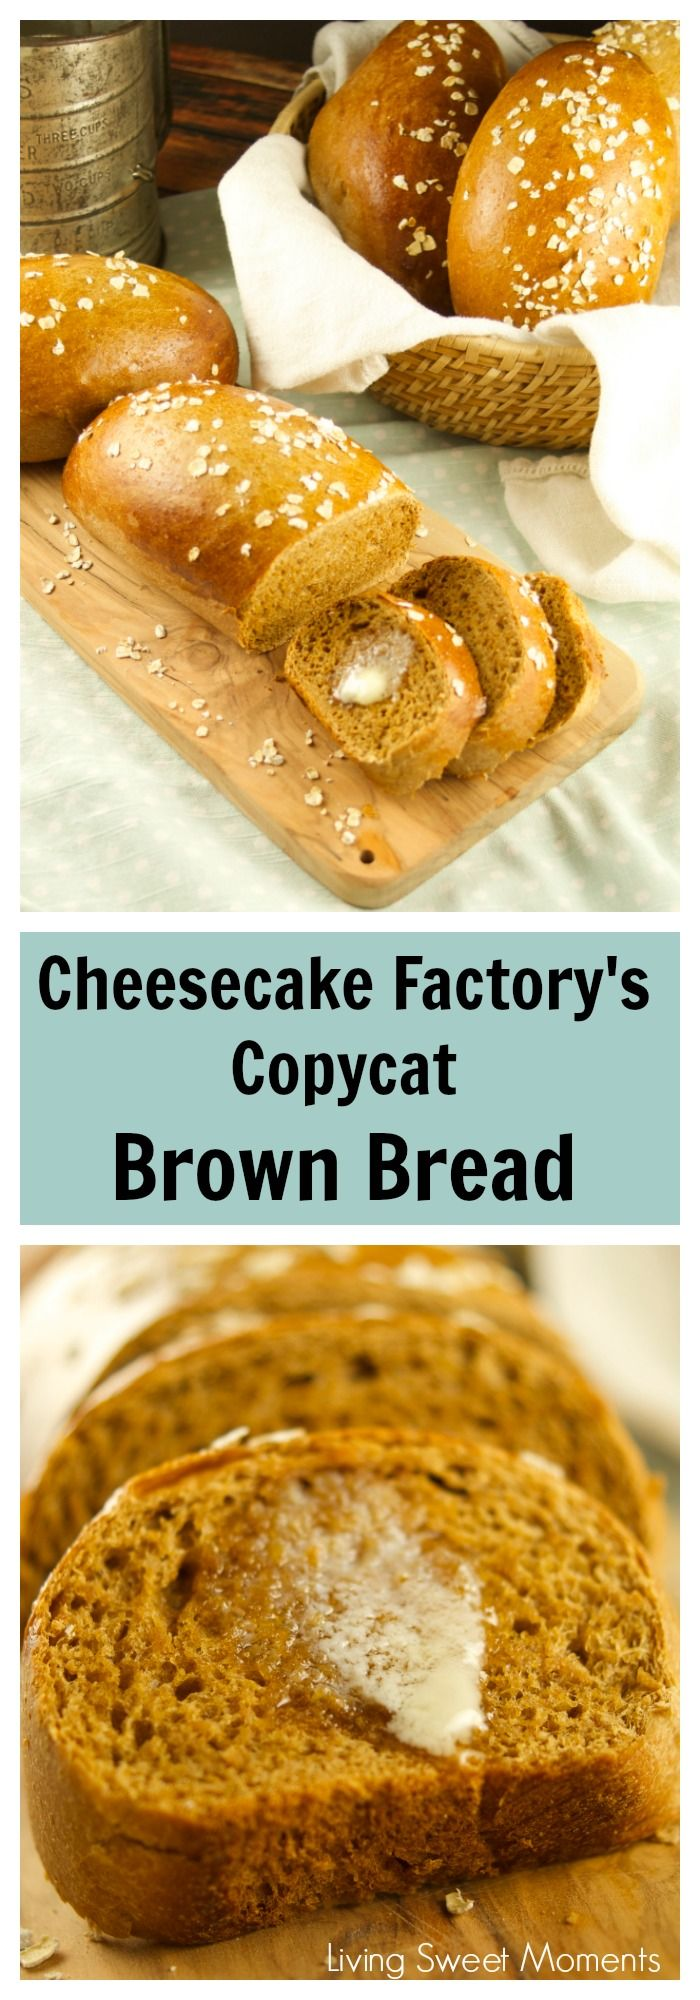 Check out how easy it is to make The Cheesecake Factory's Copycat Brown Bread recipe with honey and oats. Delicious, soft and just like the real thing. More on livingsweetmoments.com